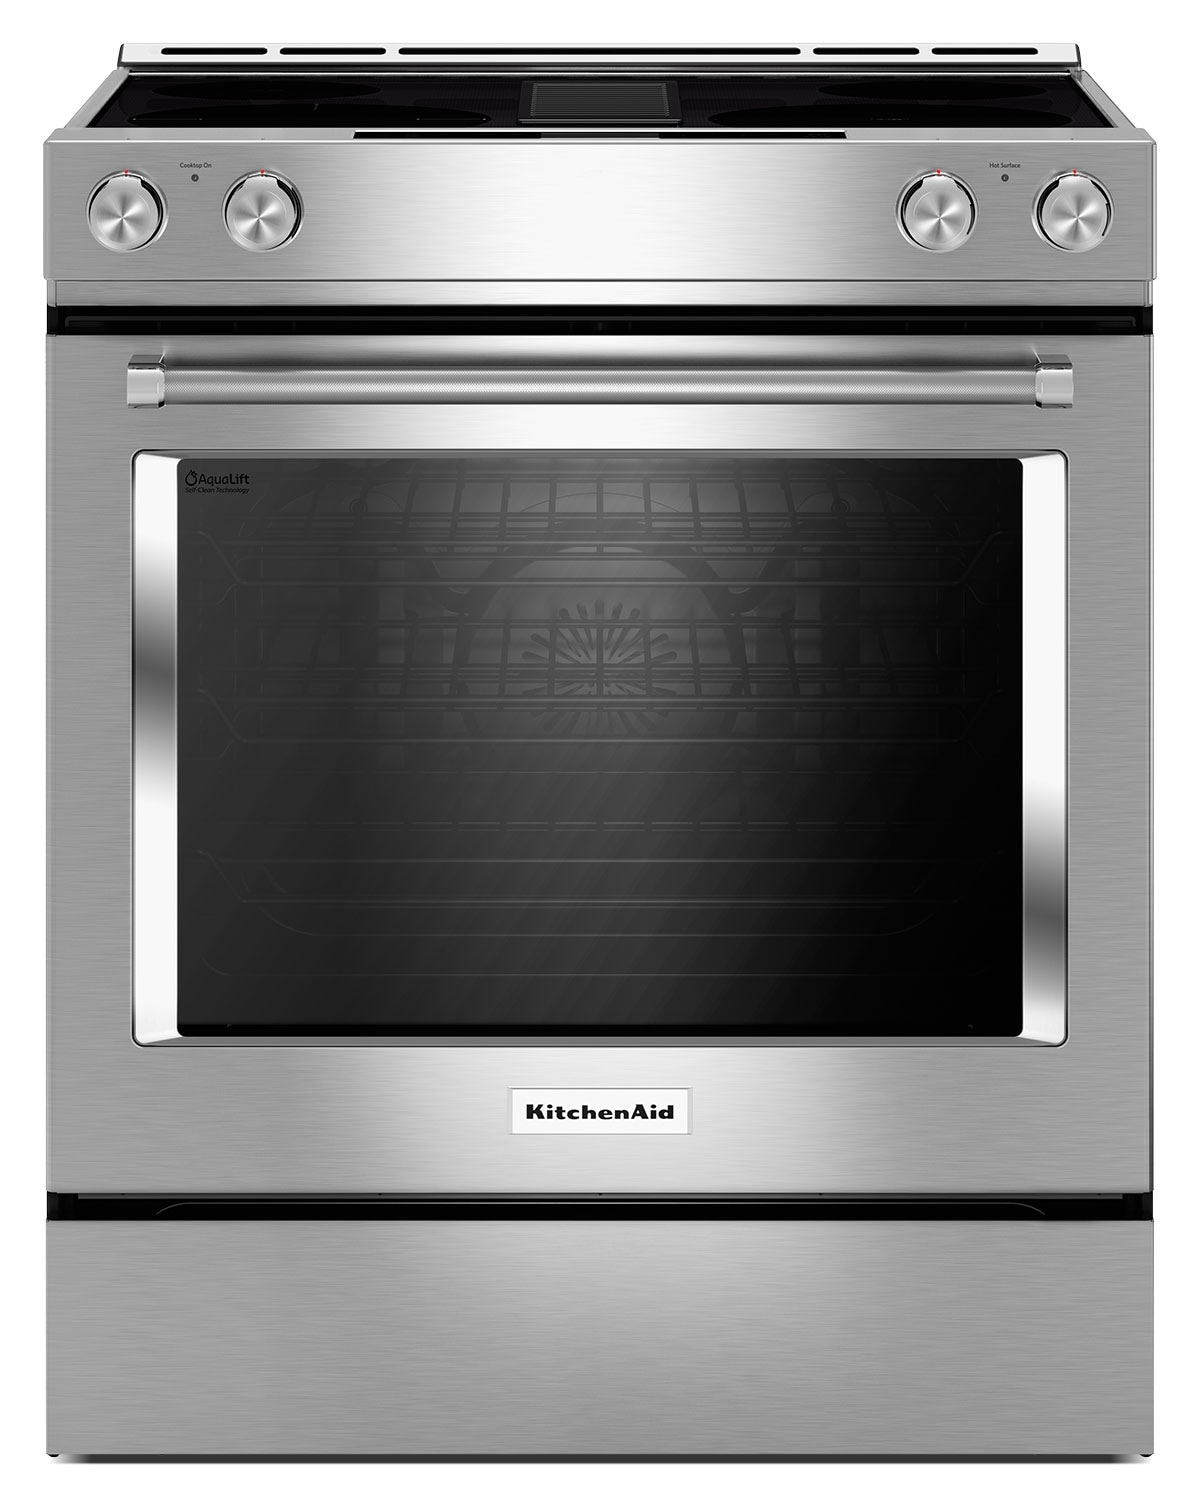 Cooking Products - KitchenAid 6.4 Cu. Ft. Downdraft Electric Range – Stainless Steel